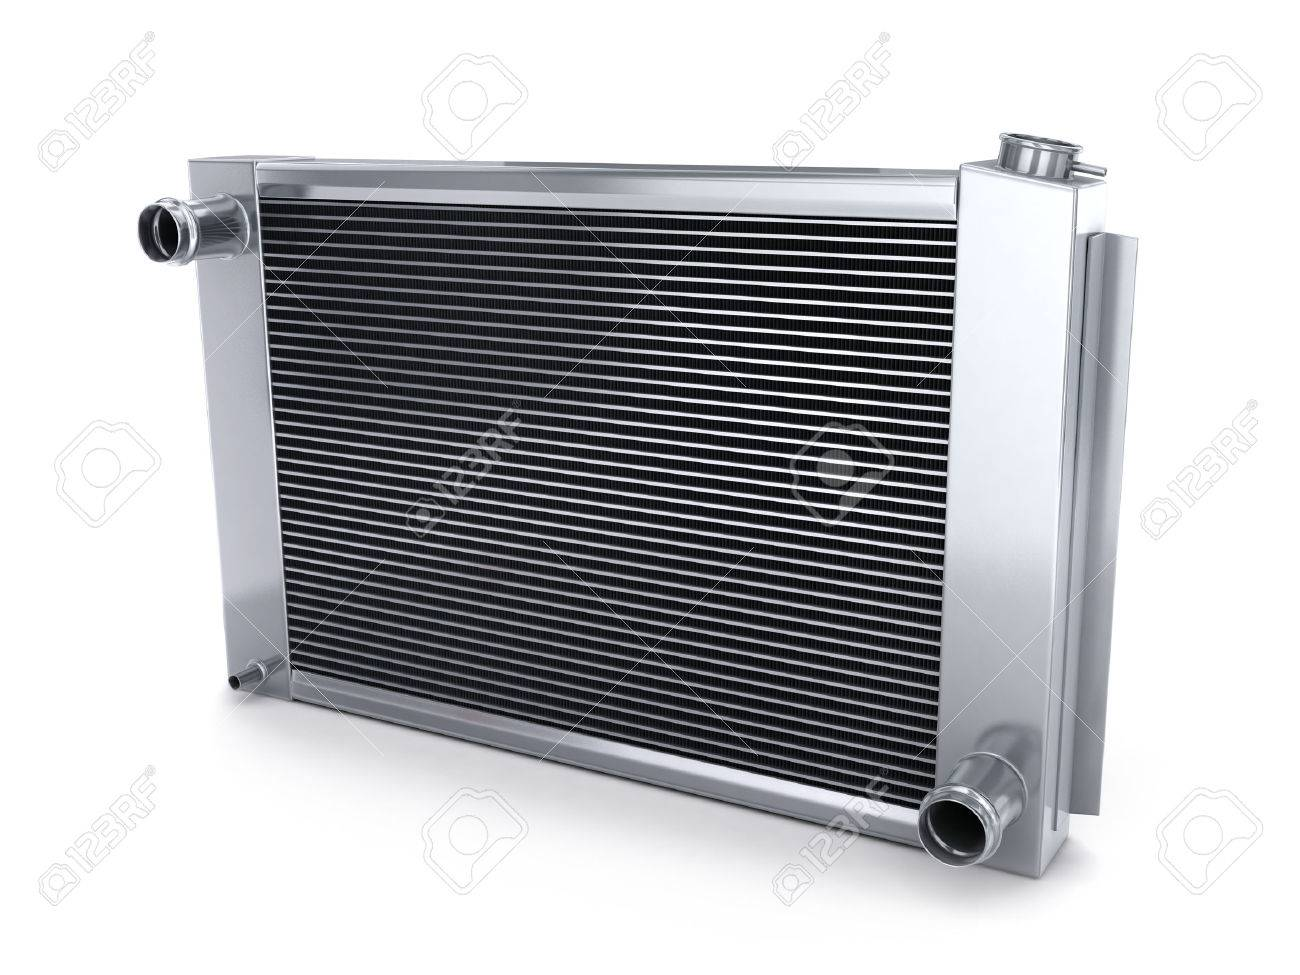 Car radiator (done in 3d, on white background) - 43621824